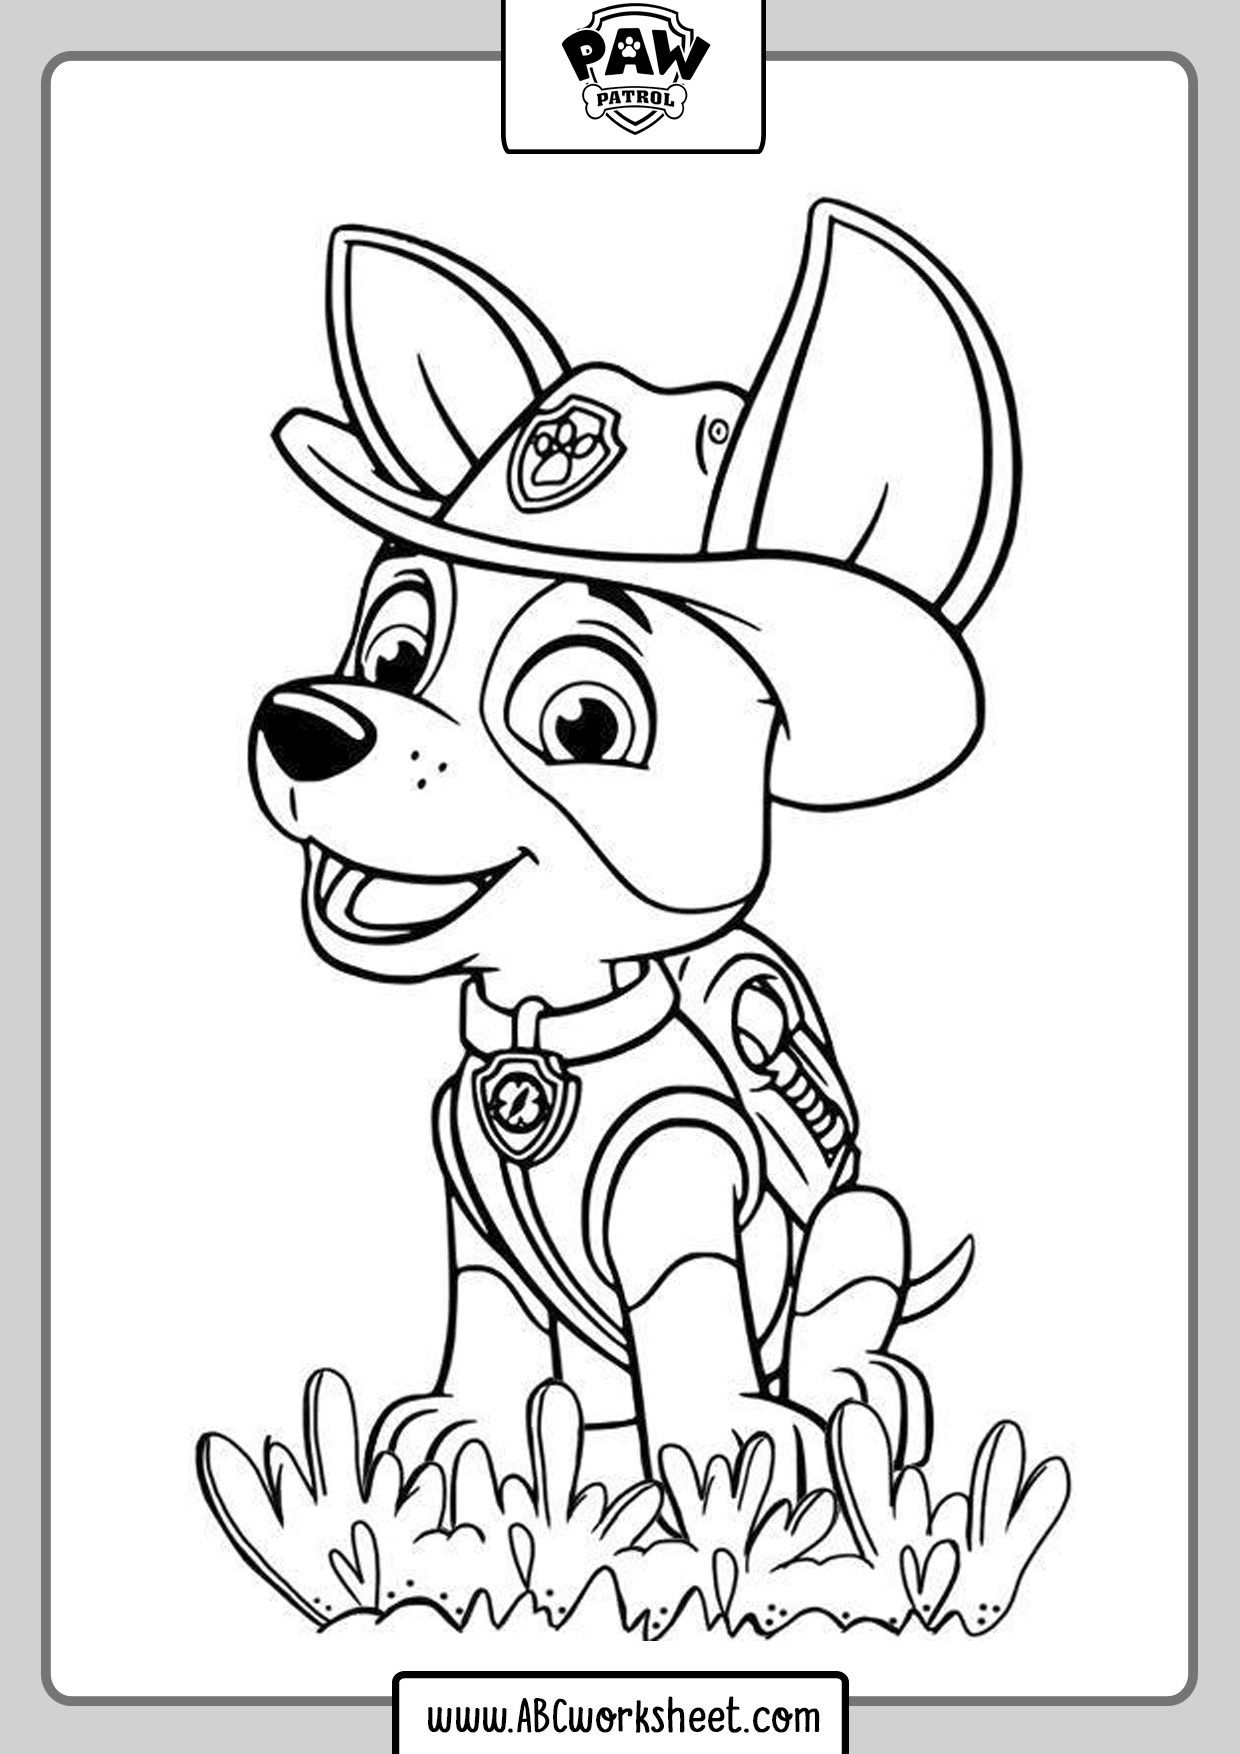 Paw Patrol Coloring Pages Abc Worksheet Paw Patrol Marshall Ausmalbilder Paw Patrol Ausmalbilder